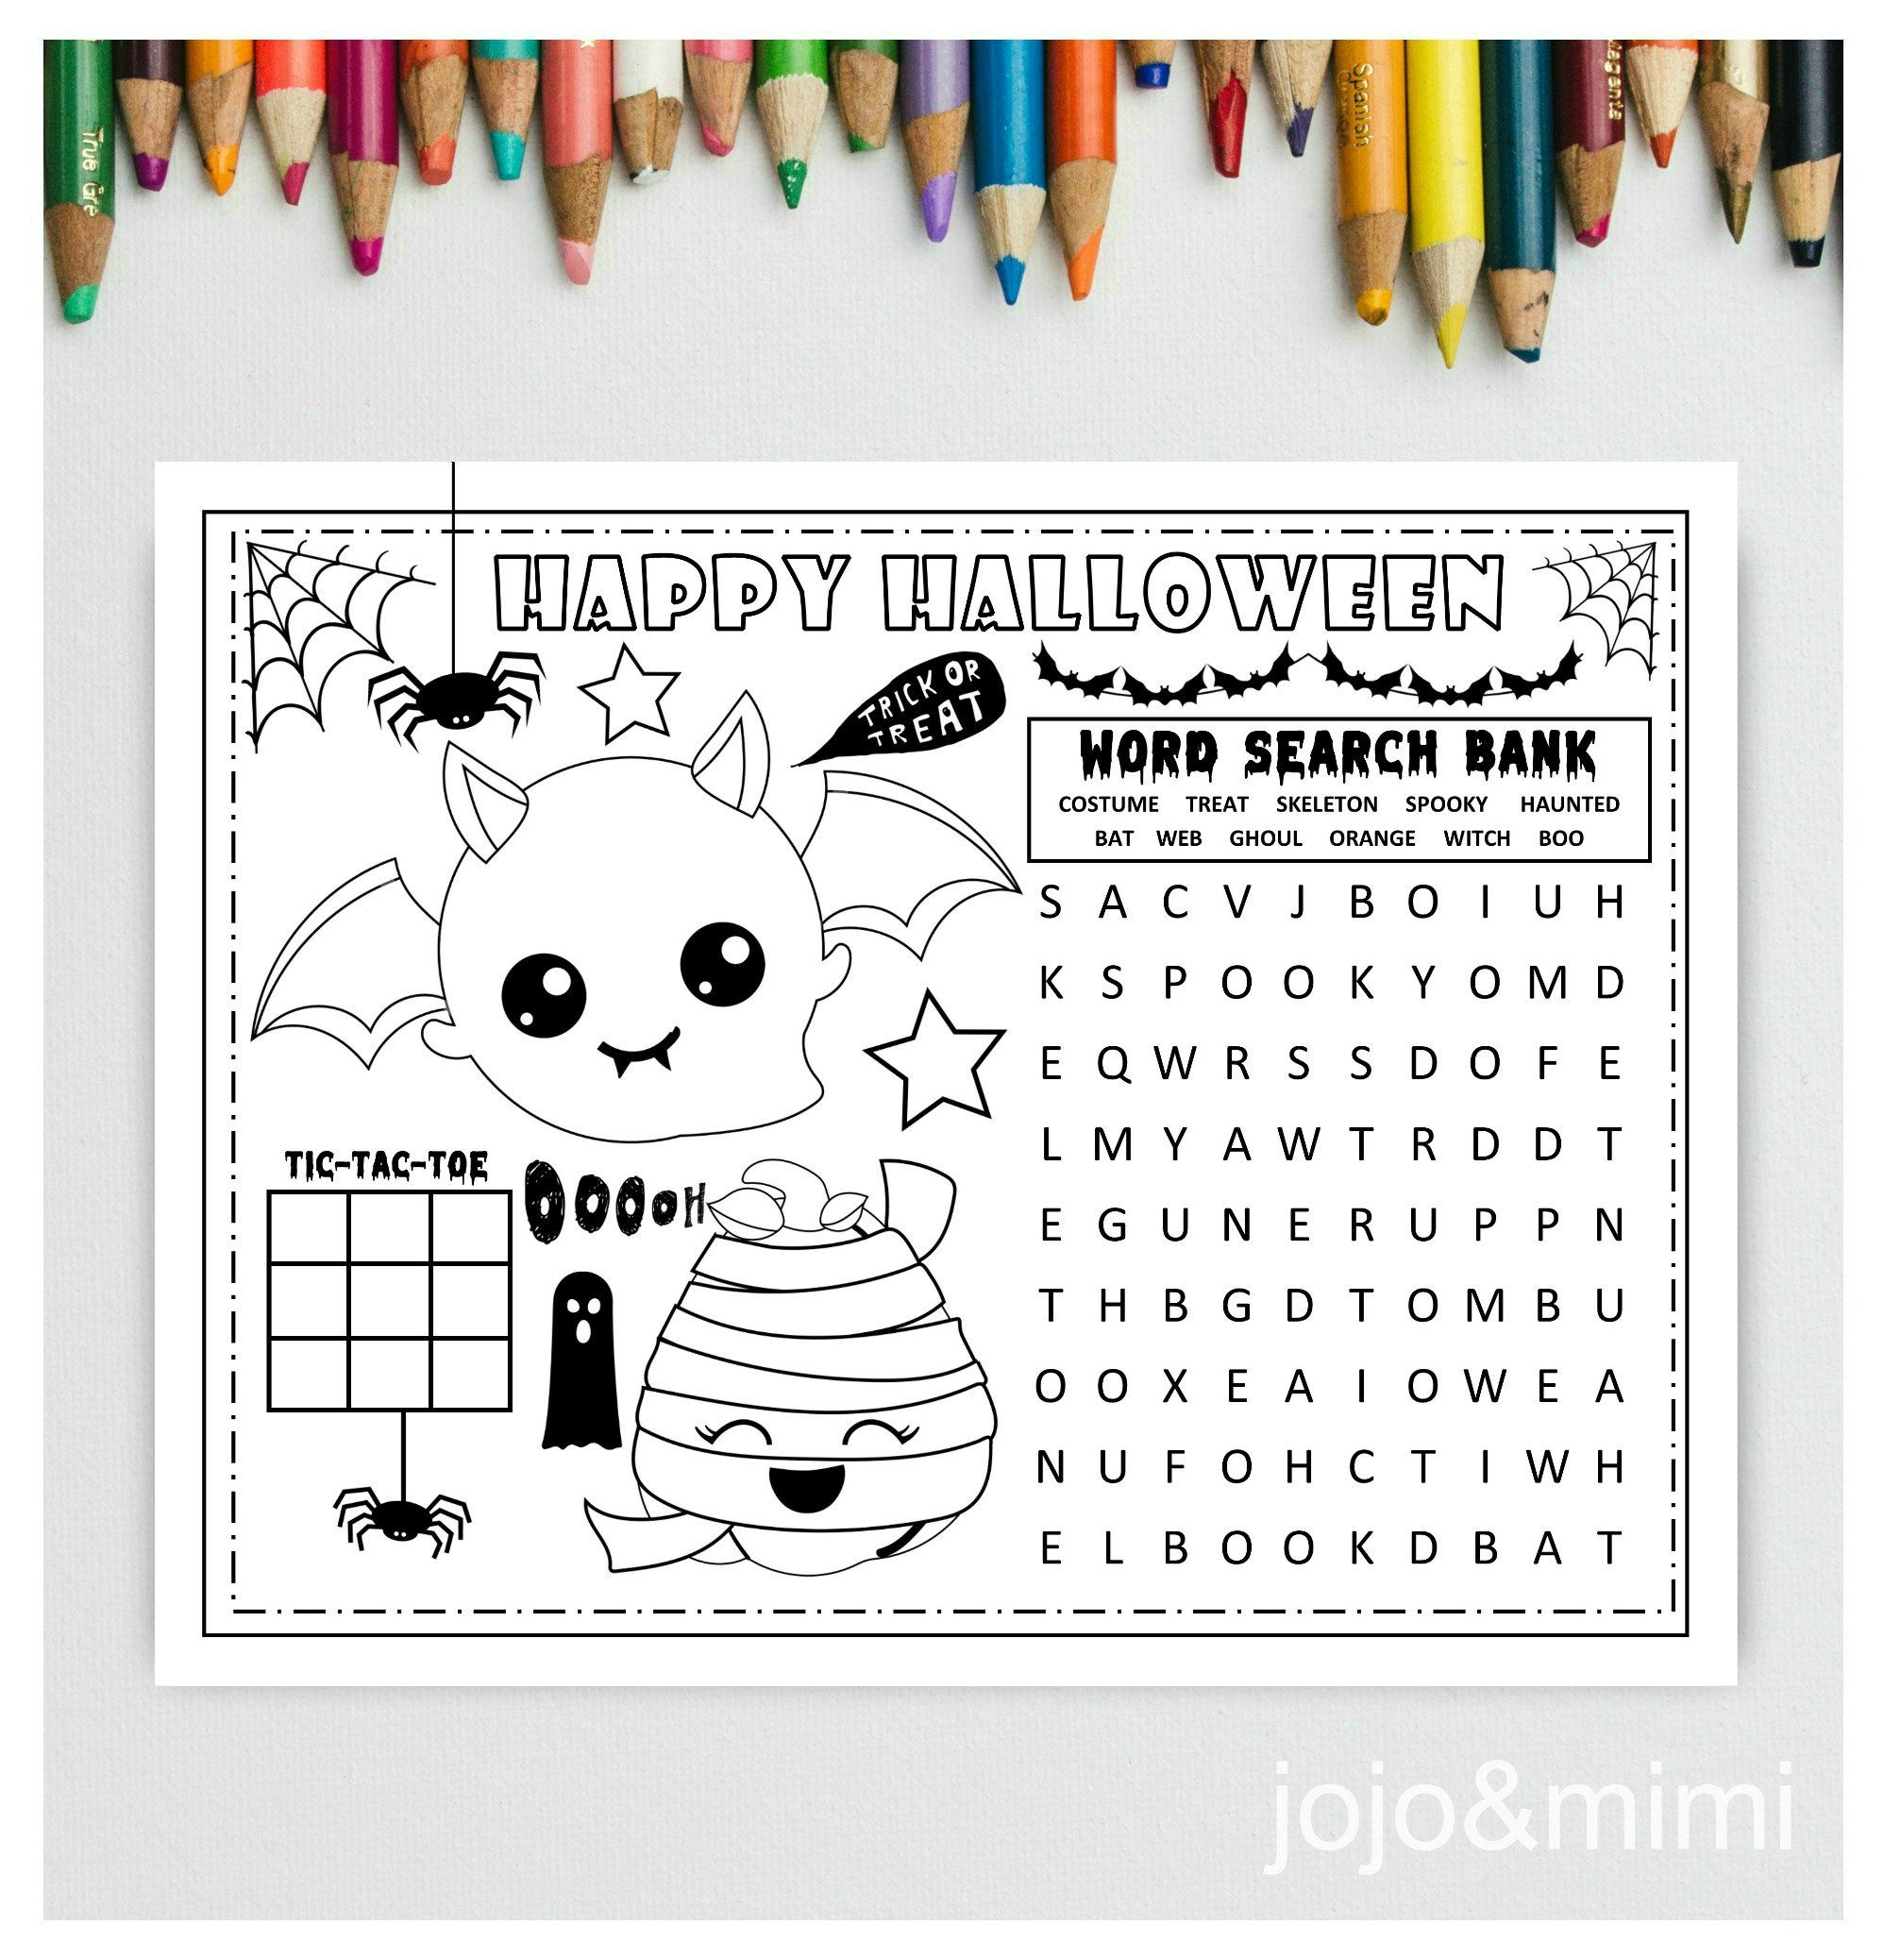 Halloween Printable Placemat Activity Halloween Coloring Page Etsy Halloween Placemats Halloween Printables Halloween Printables Free